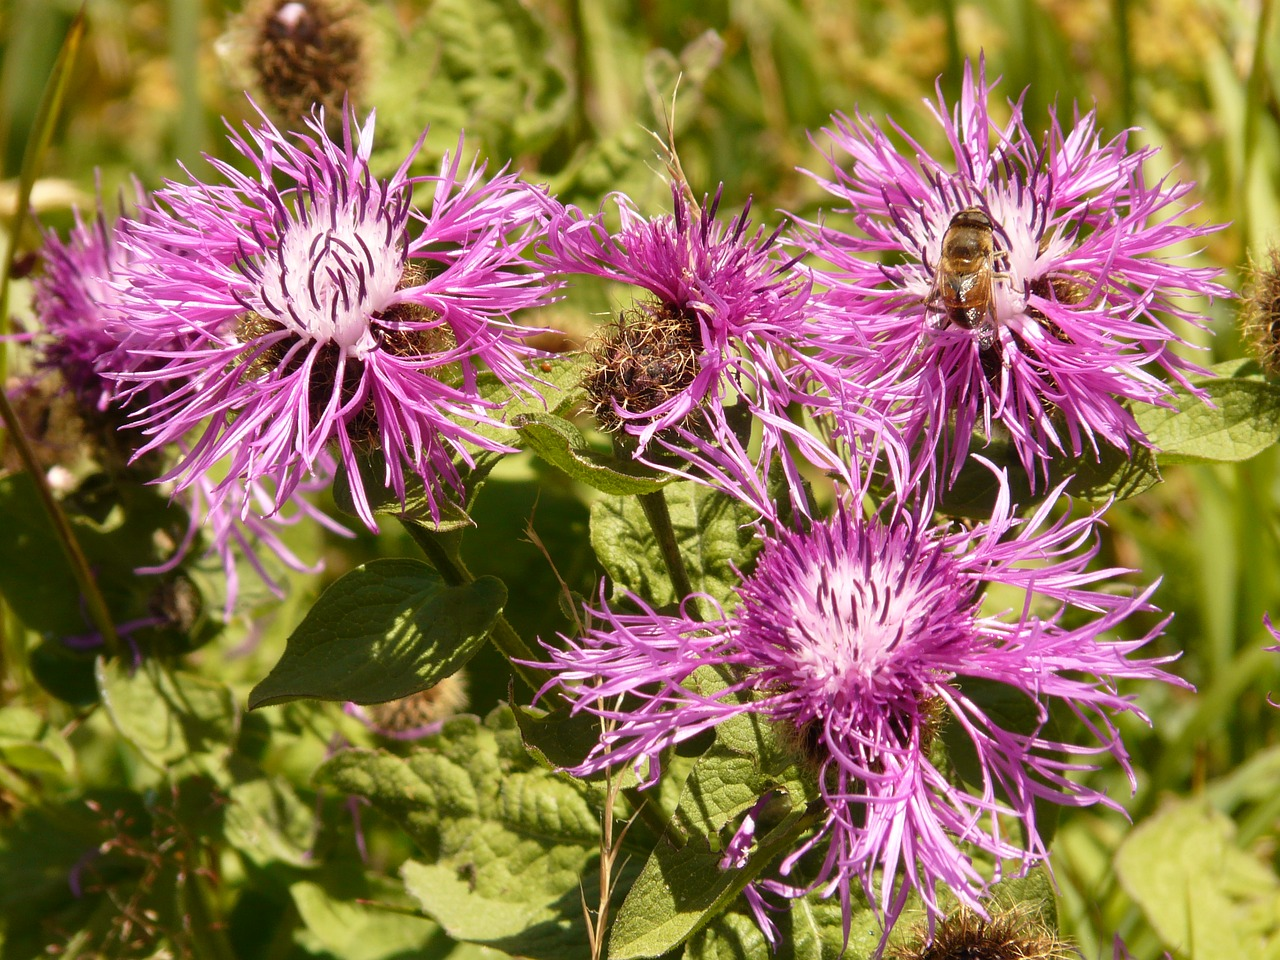 meadow knapweed flower blossom free photo